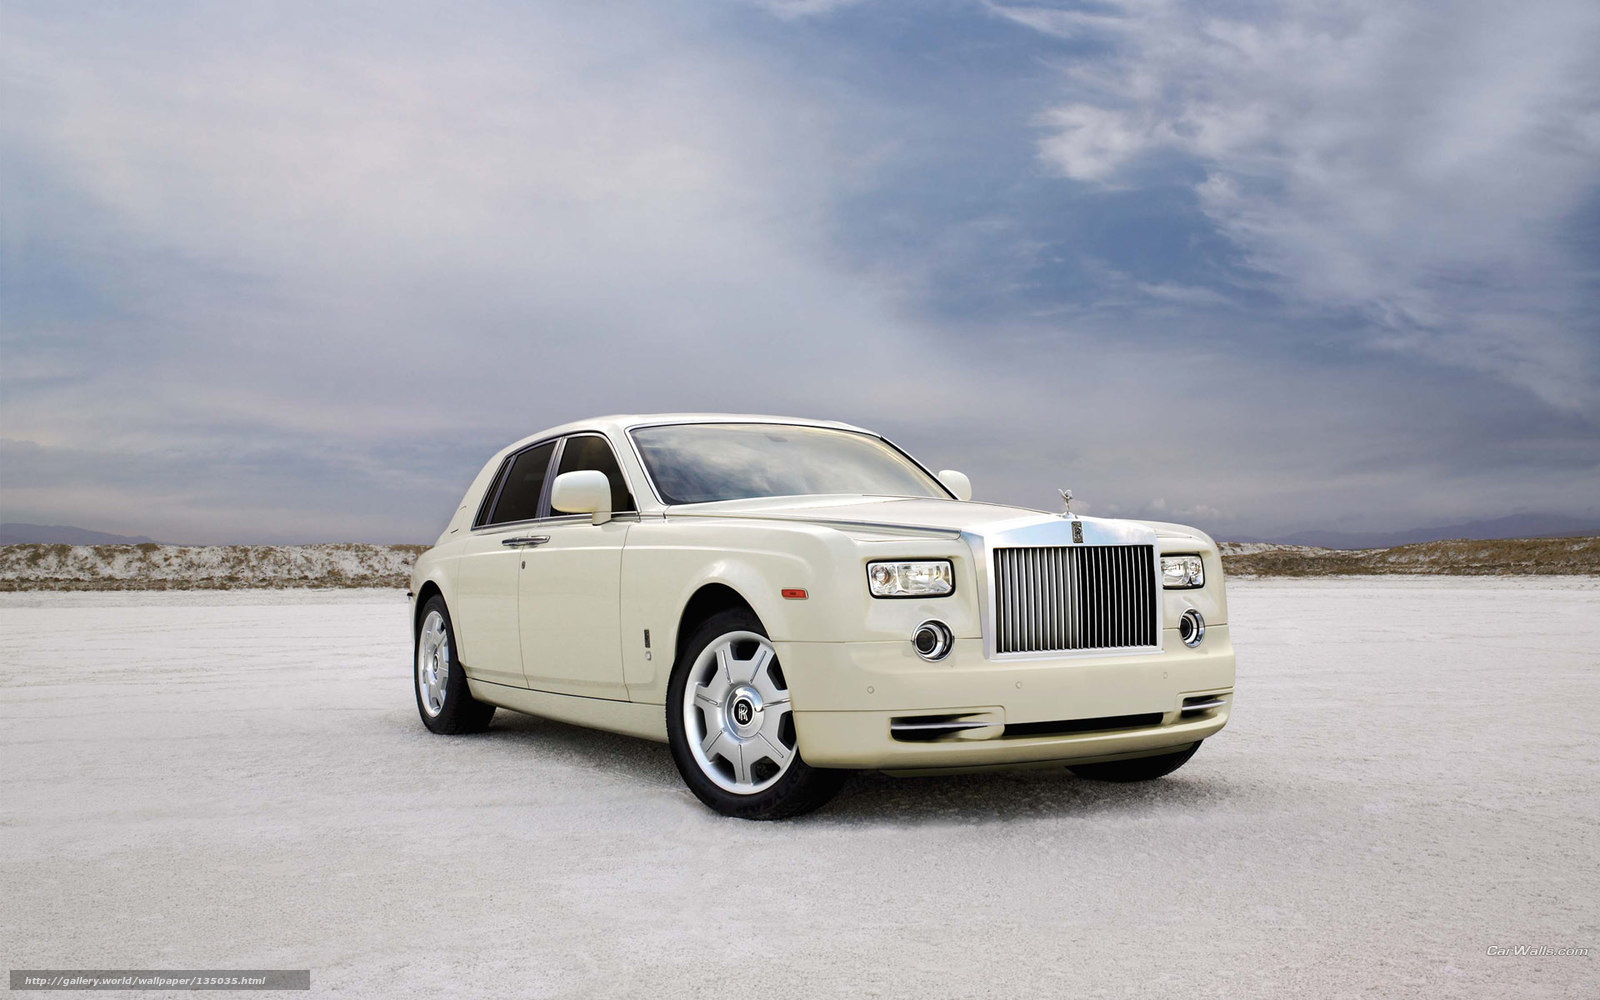 Download wallpaper rolls royce phantom car machinery free download wallpaper rolls royce phantom car machinery free desktop wallpaper in the resolution 1920x1200 picture 135035 voltagebd Gallery